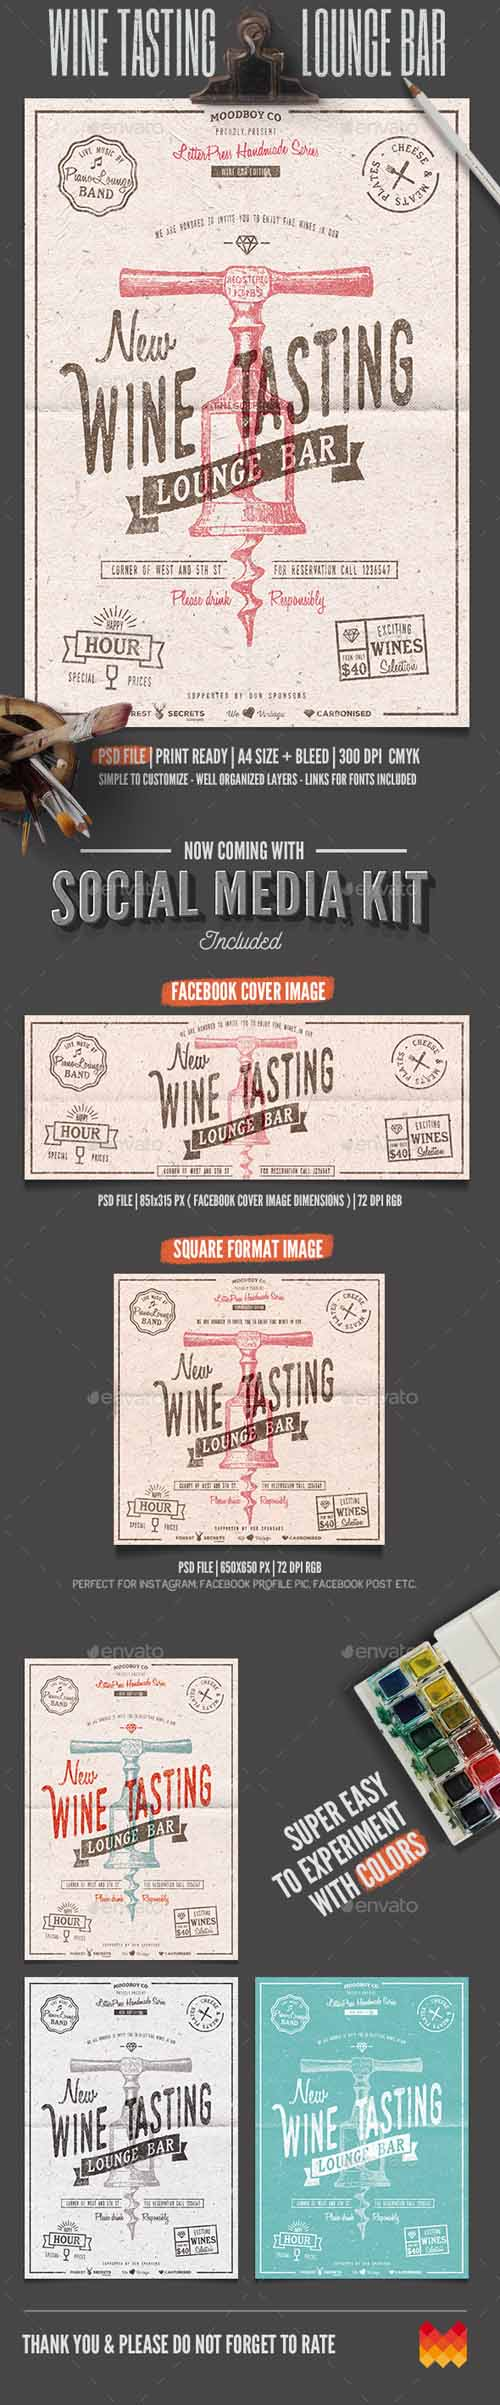 wine tasting lounge flyer poster 11985596 downgfx net download gfx. Black Bedroom Furniture Sets. Home Design Ideas